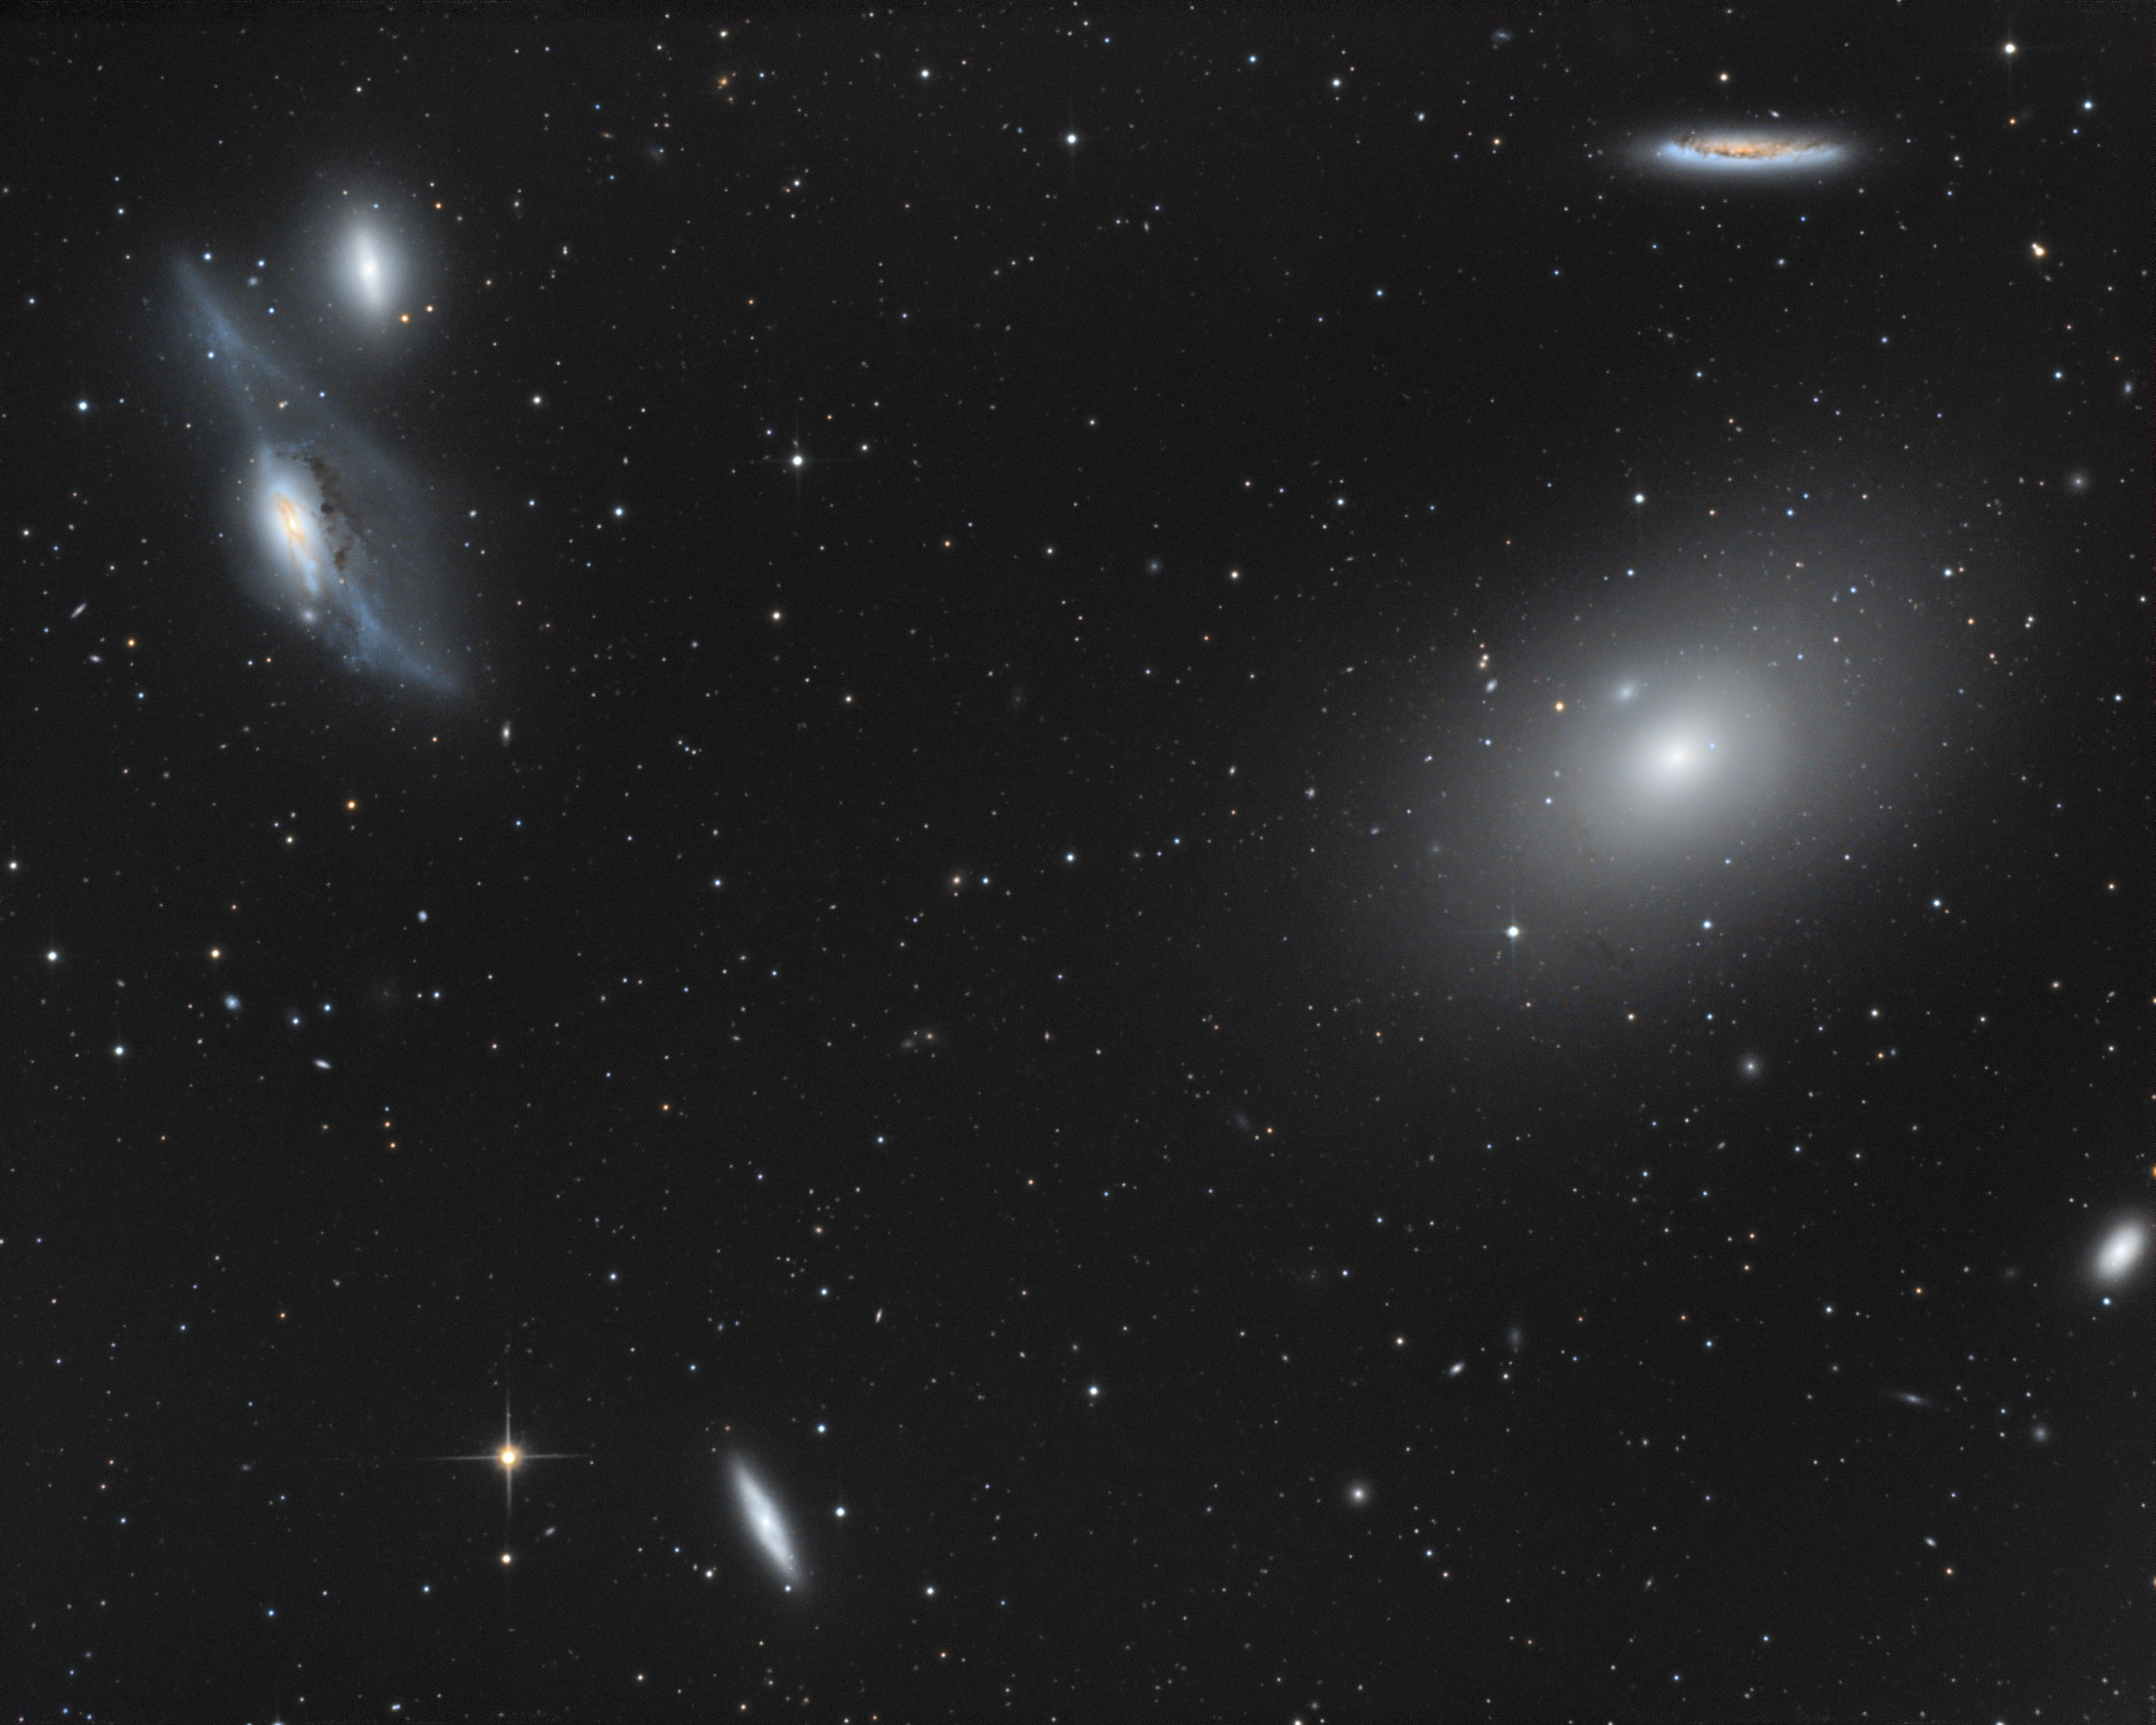 NGC4438 + quelque galaxies de la chaine Markarienne Picture-190c9b959fef27f737d1608bc64be22f-original